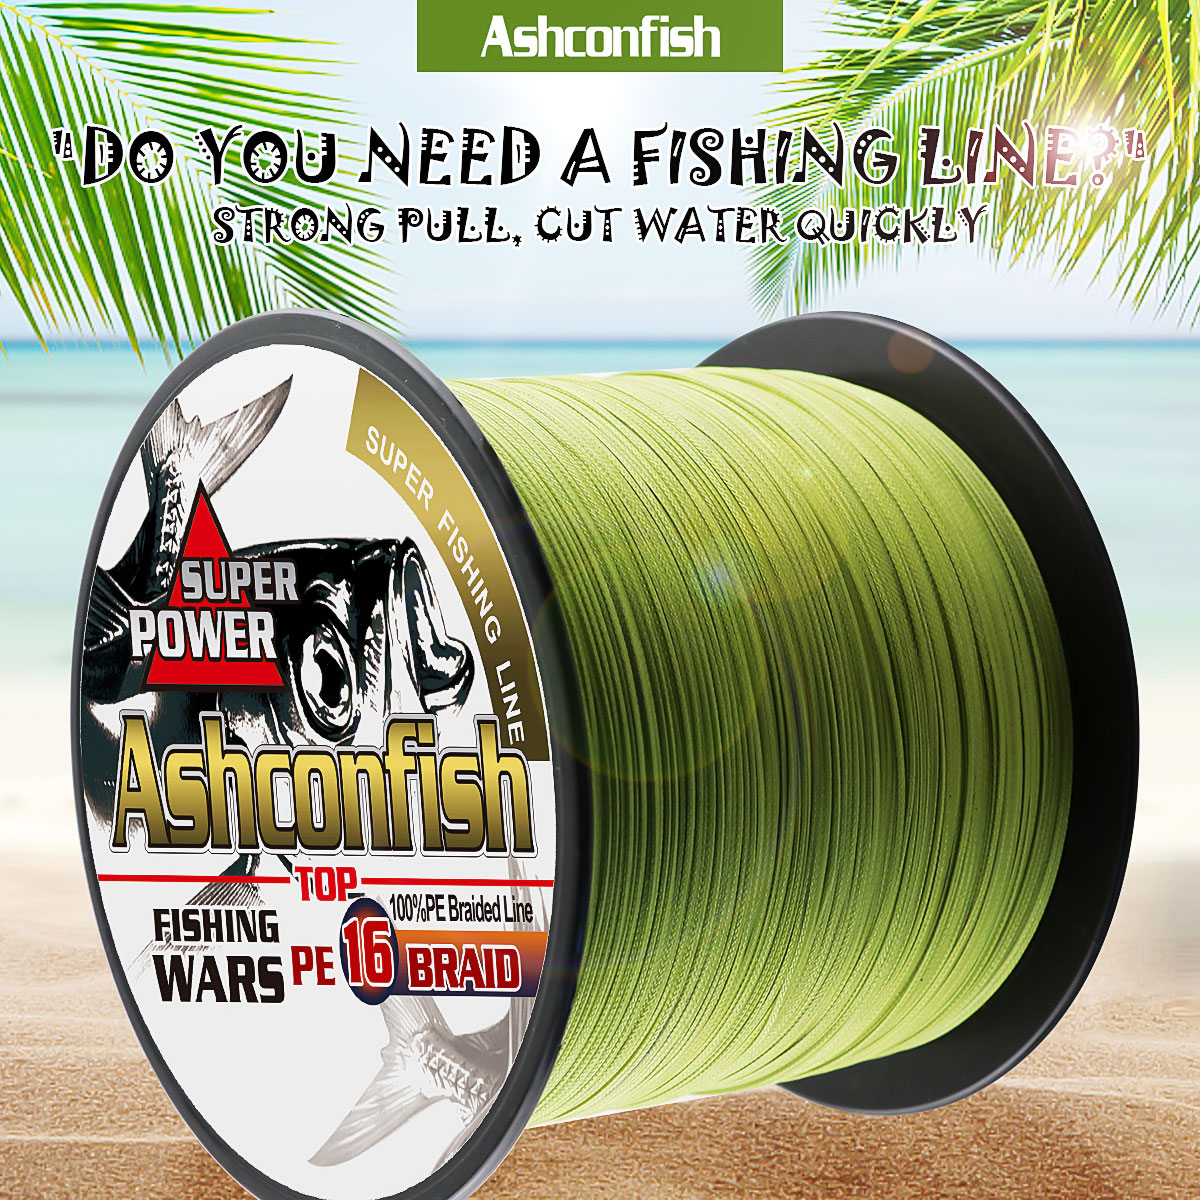 16 Strands super strong braided fishing line pe hollowcore 1500M wire carp fishing saltwater 20 30 60 130 150 200 300 400 500LBS - 5